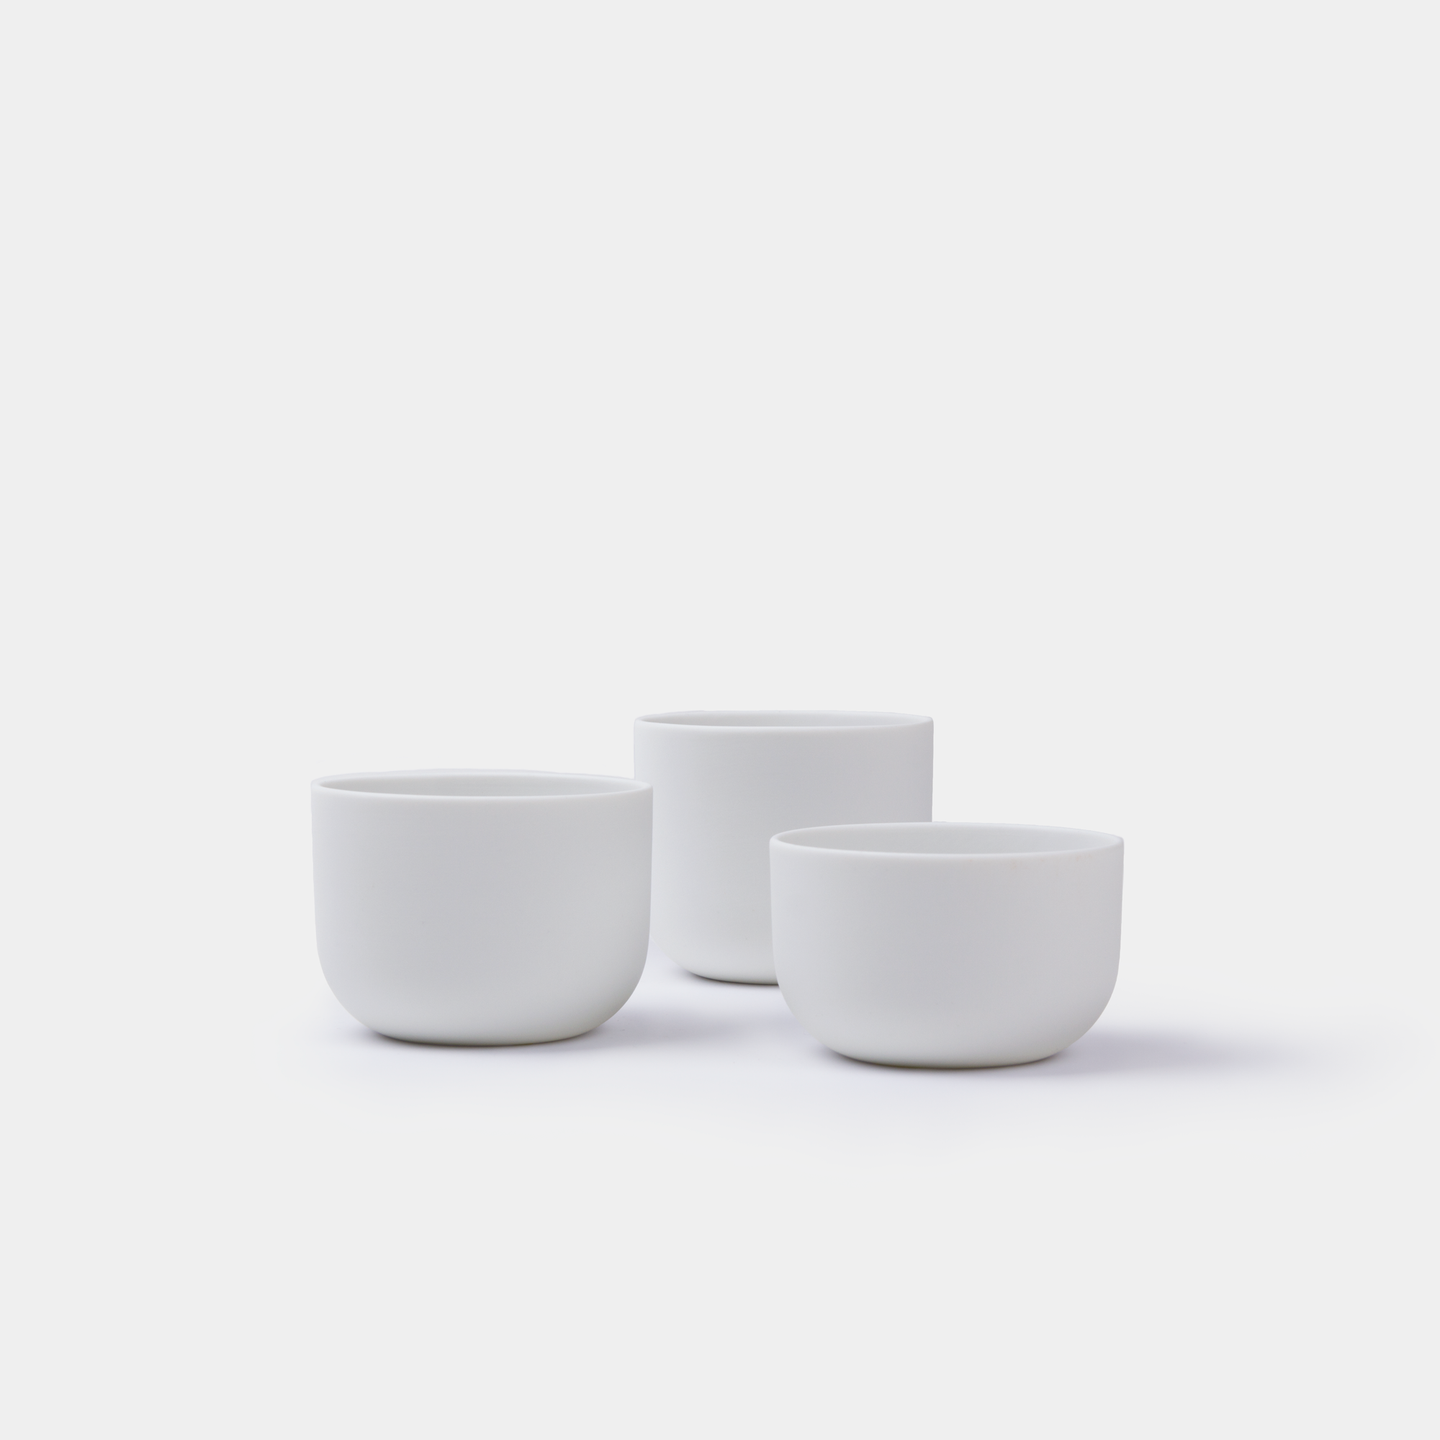 Tea Light Holders Bisque (set of 3) - Smaller Objects | Shortlist store Ghent Belgium